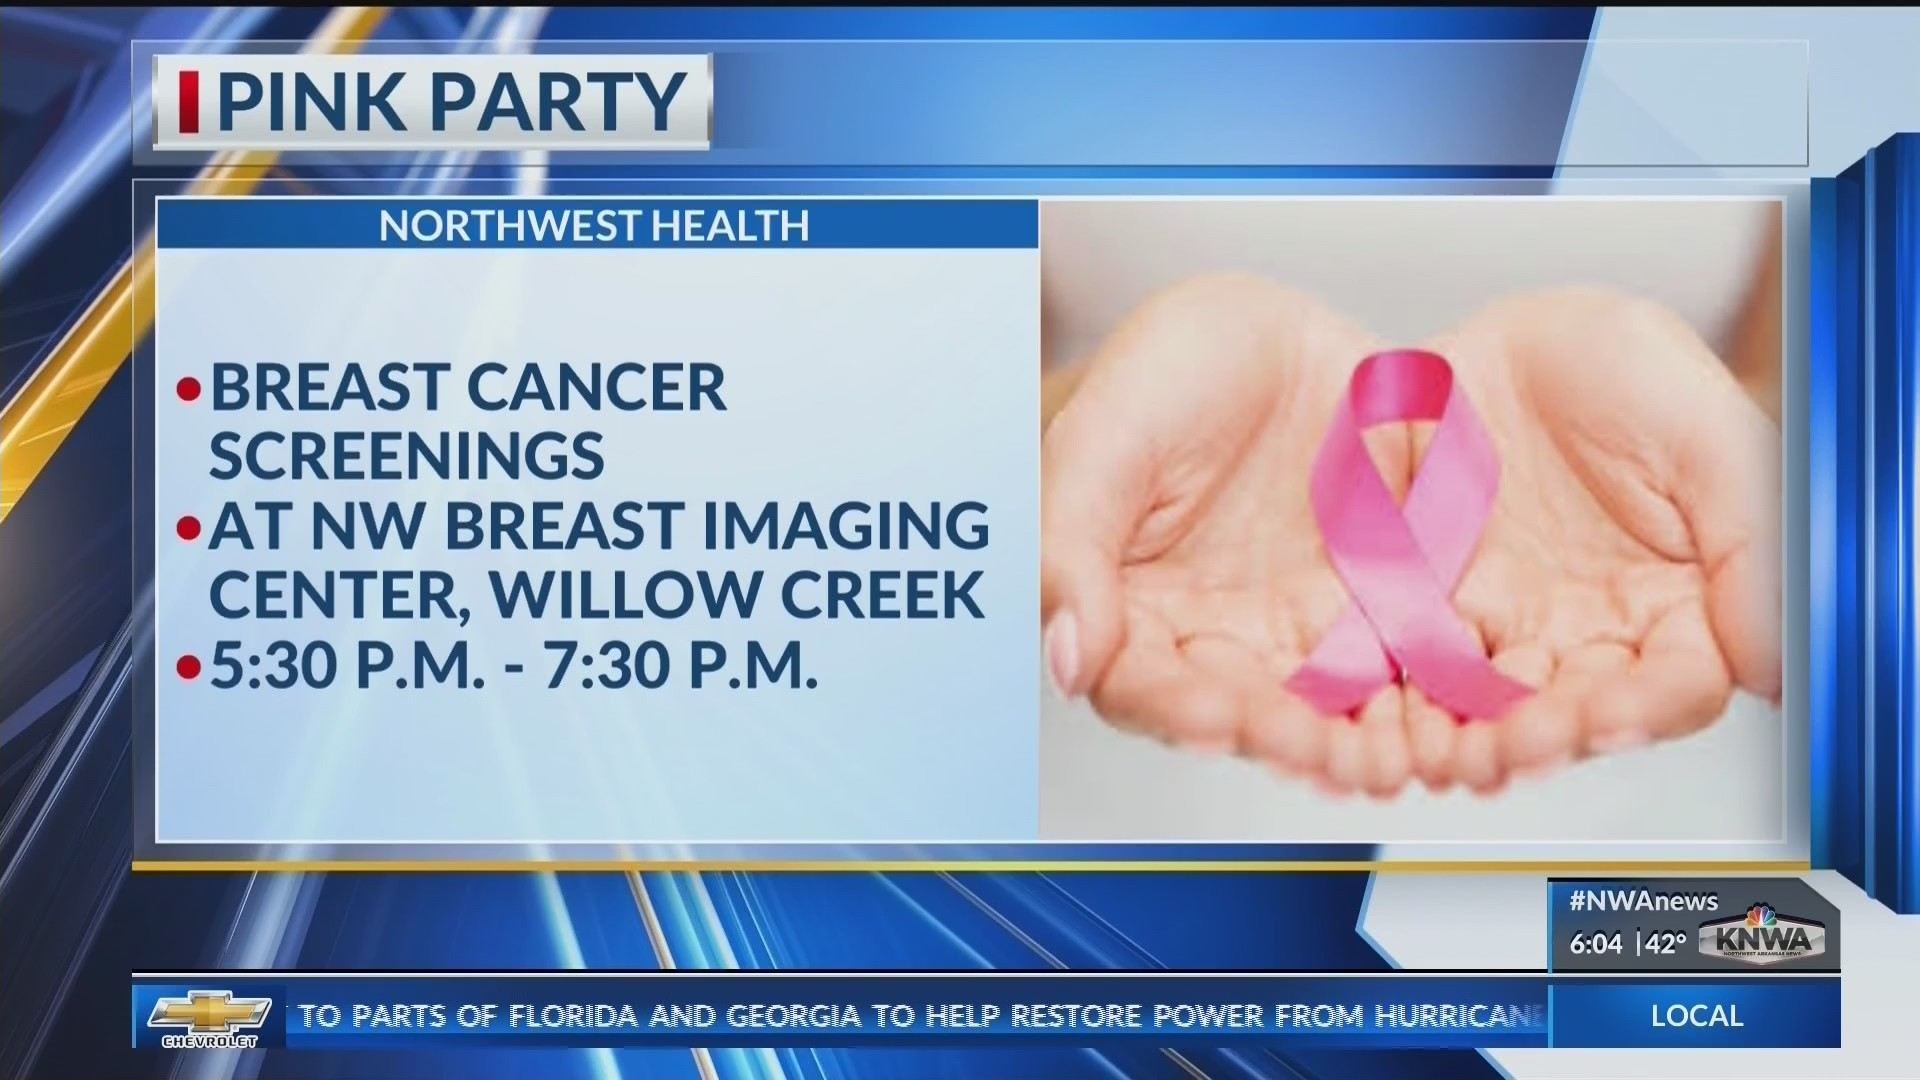 Northwest_Health_Hosts_Pink_Party_0_20181011121943